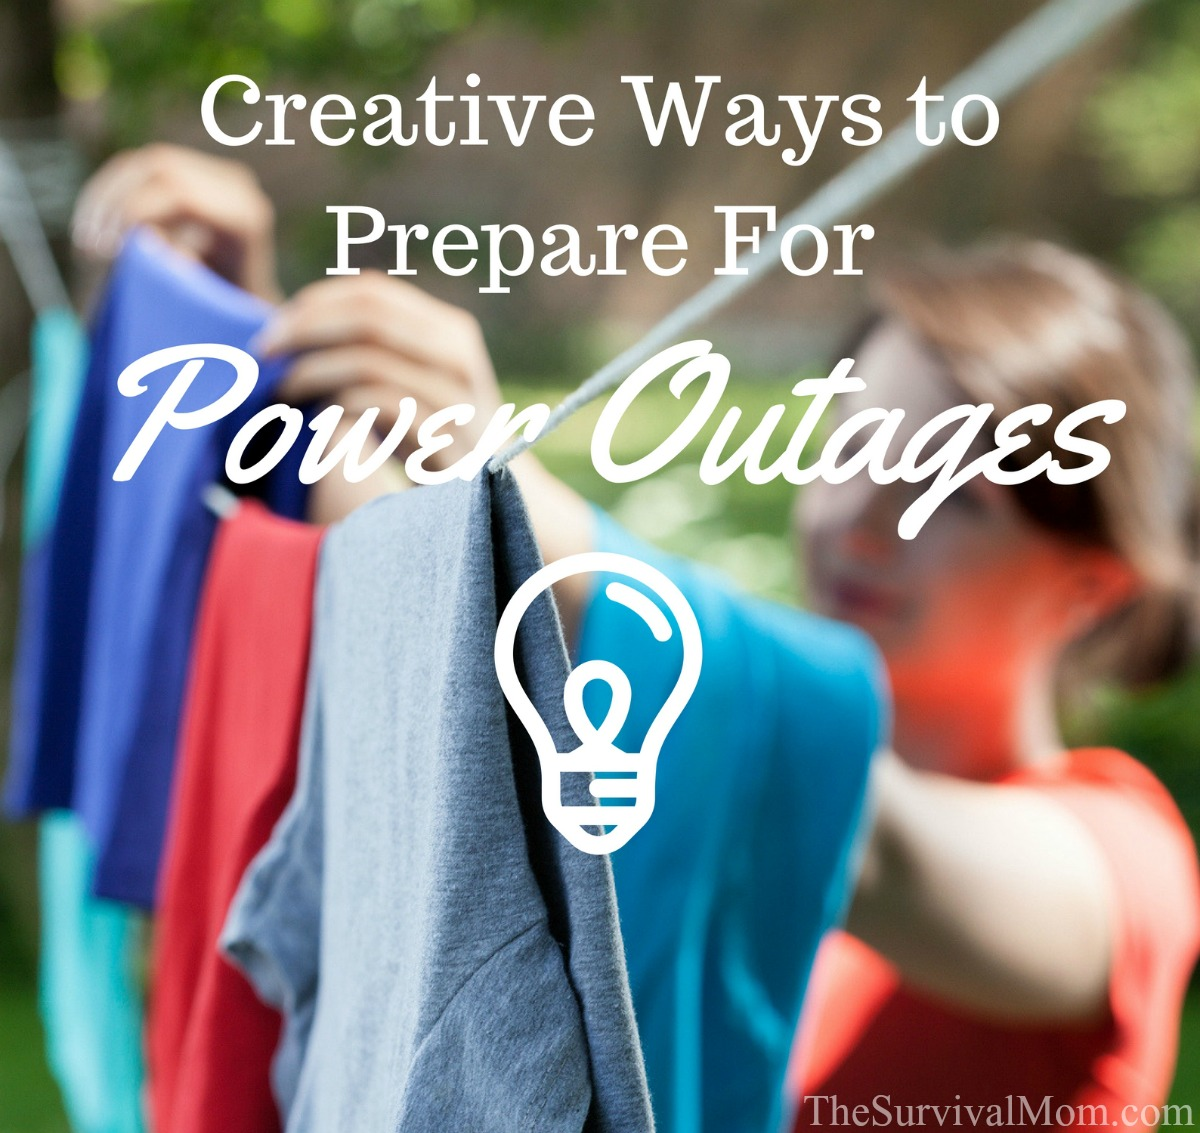 Creative Ways to Prepare For Power Outages via The Survival Mom